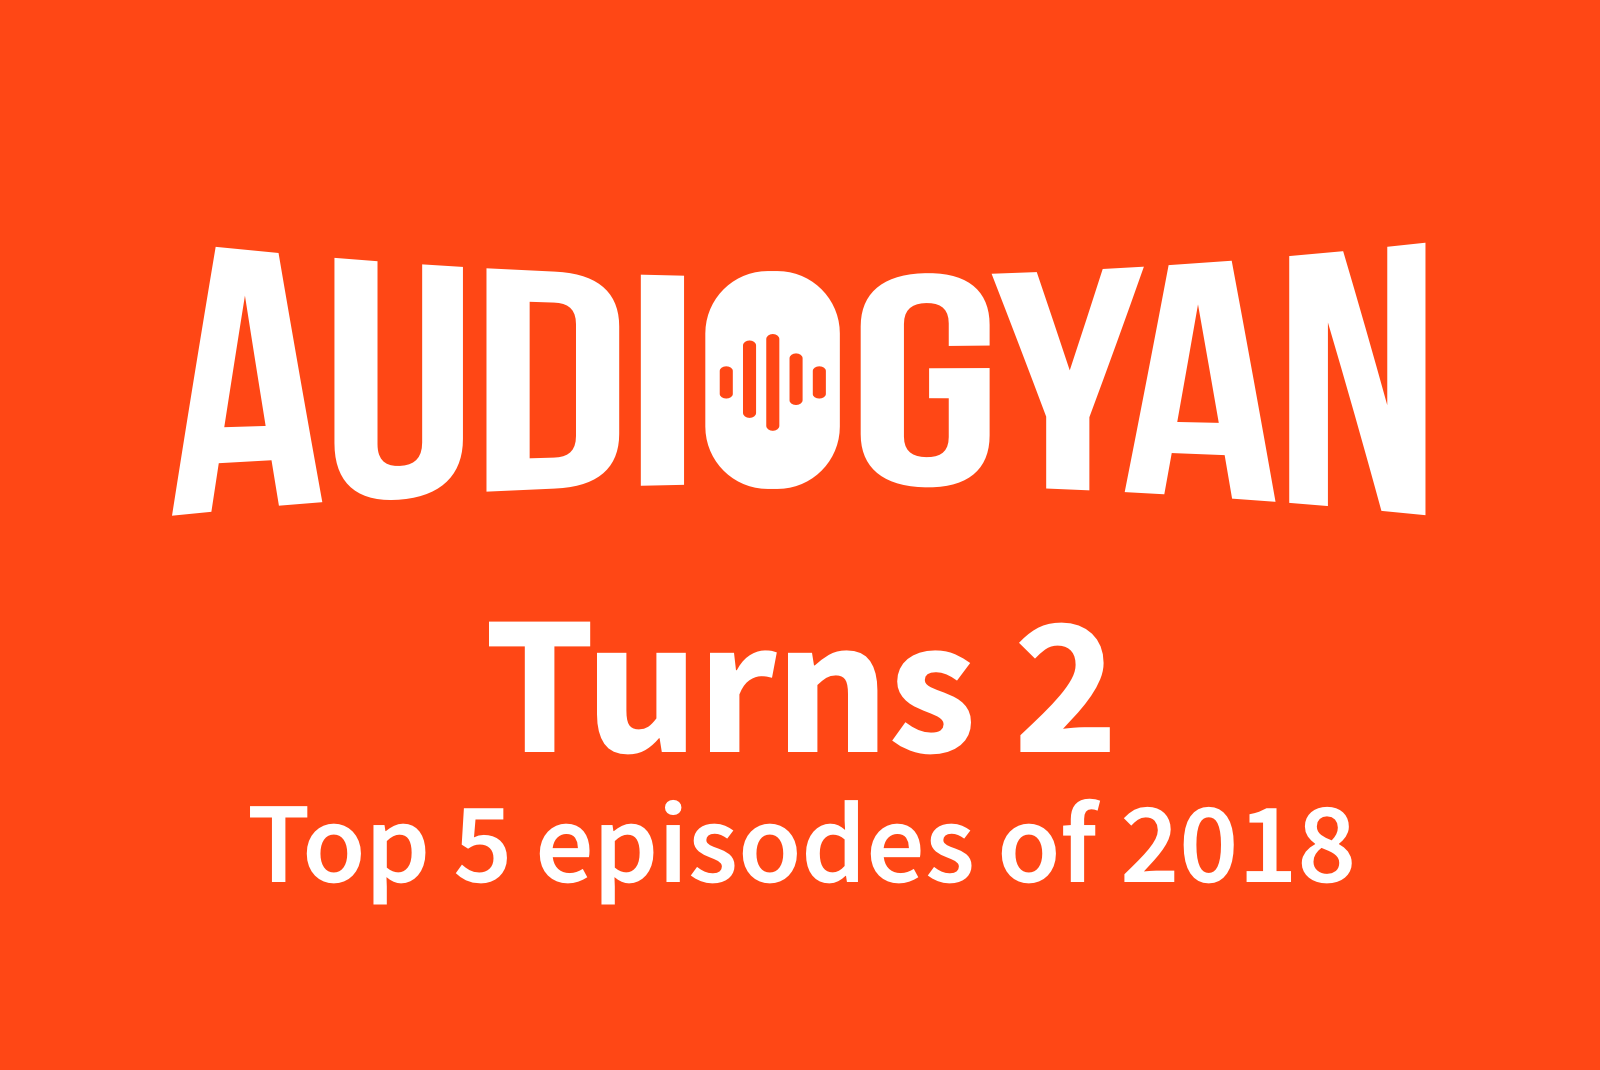 5: Audiogyan turns 2 - Top 5 insights from 2018